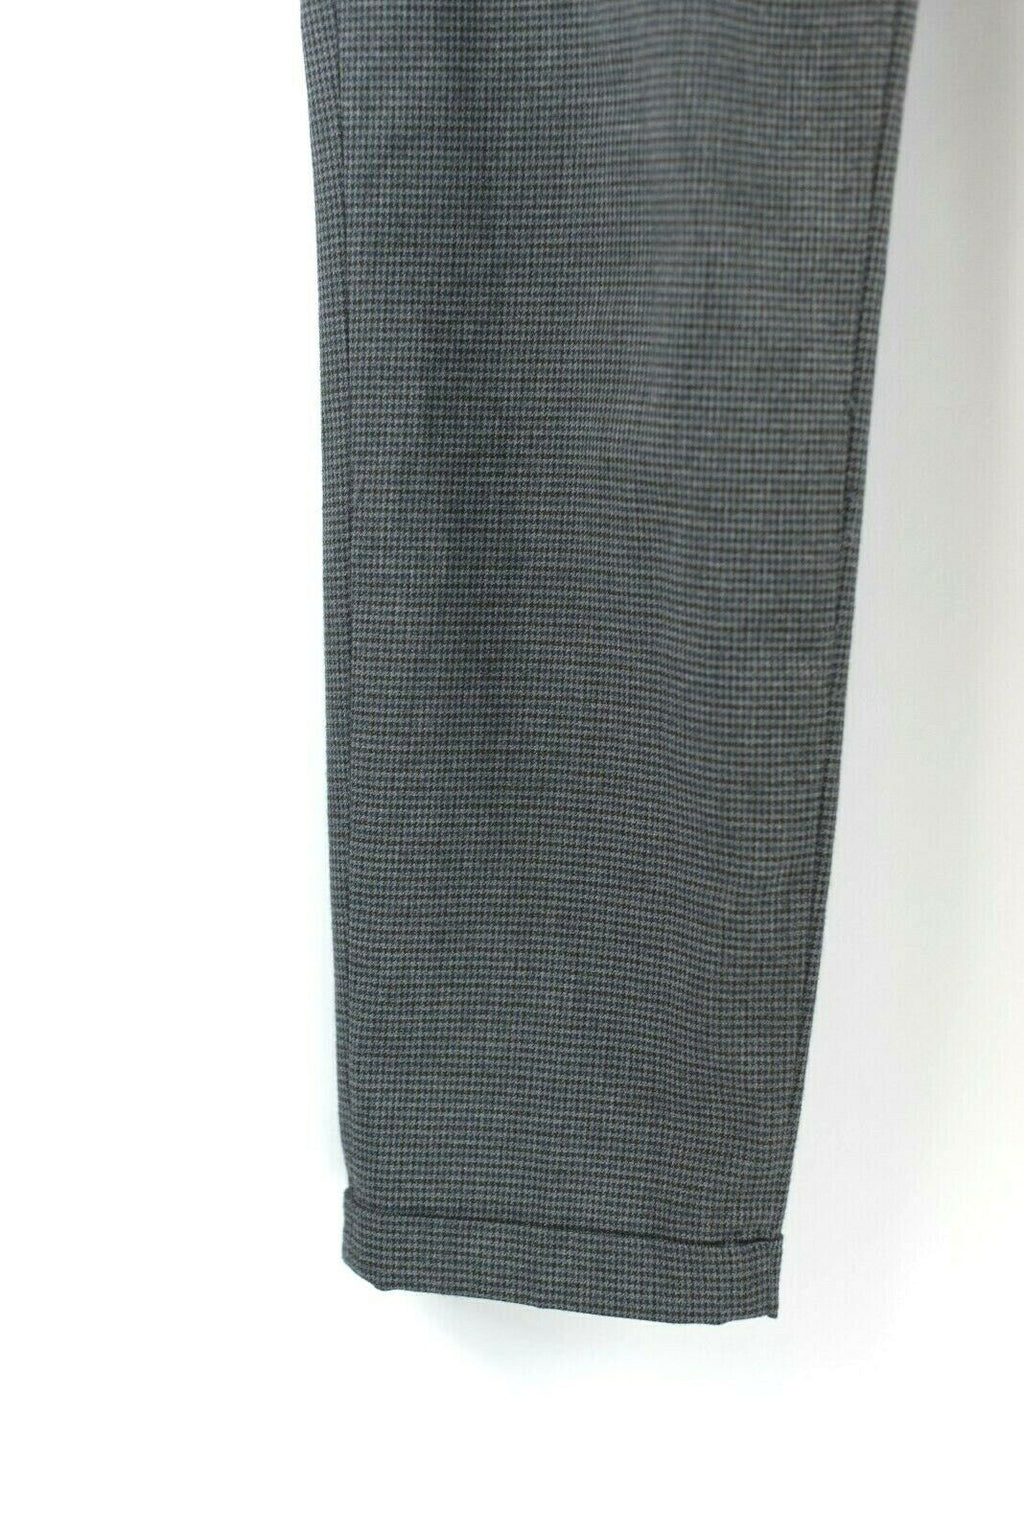 Zara Basic Womens Size 6 Grey Pants Plaid Check Cuffed Crop Skinny Slim Trousers